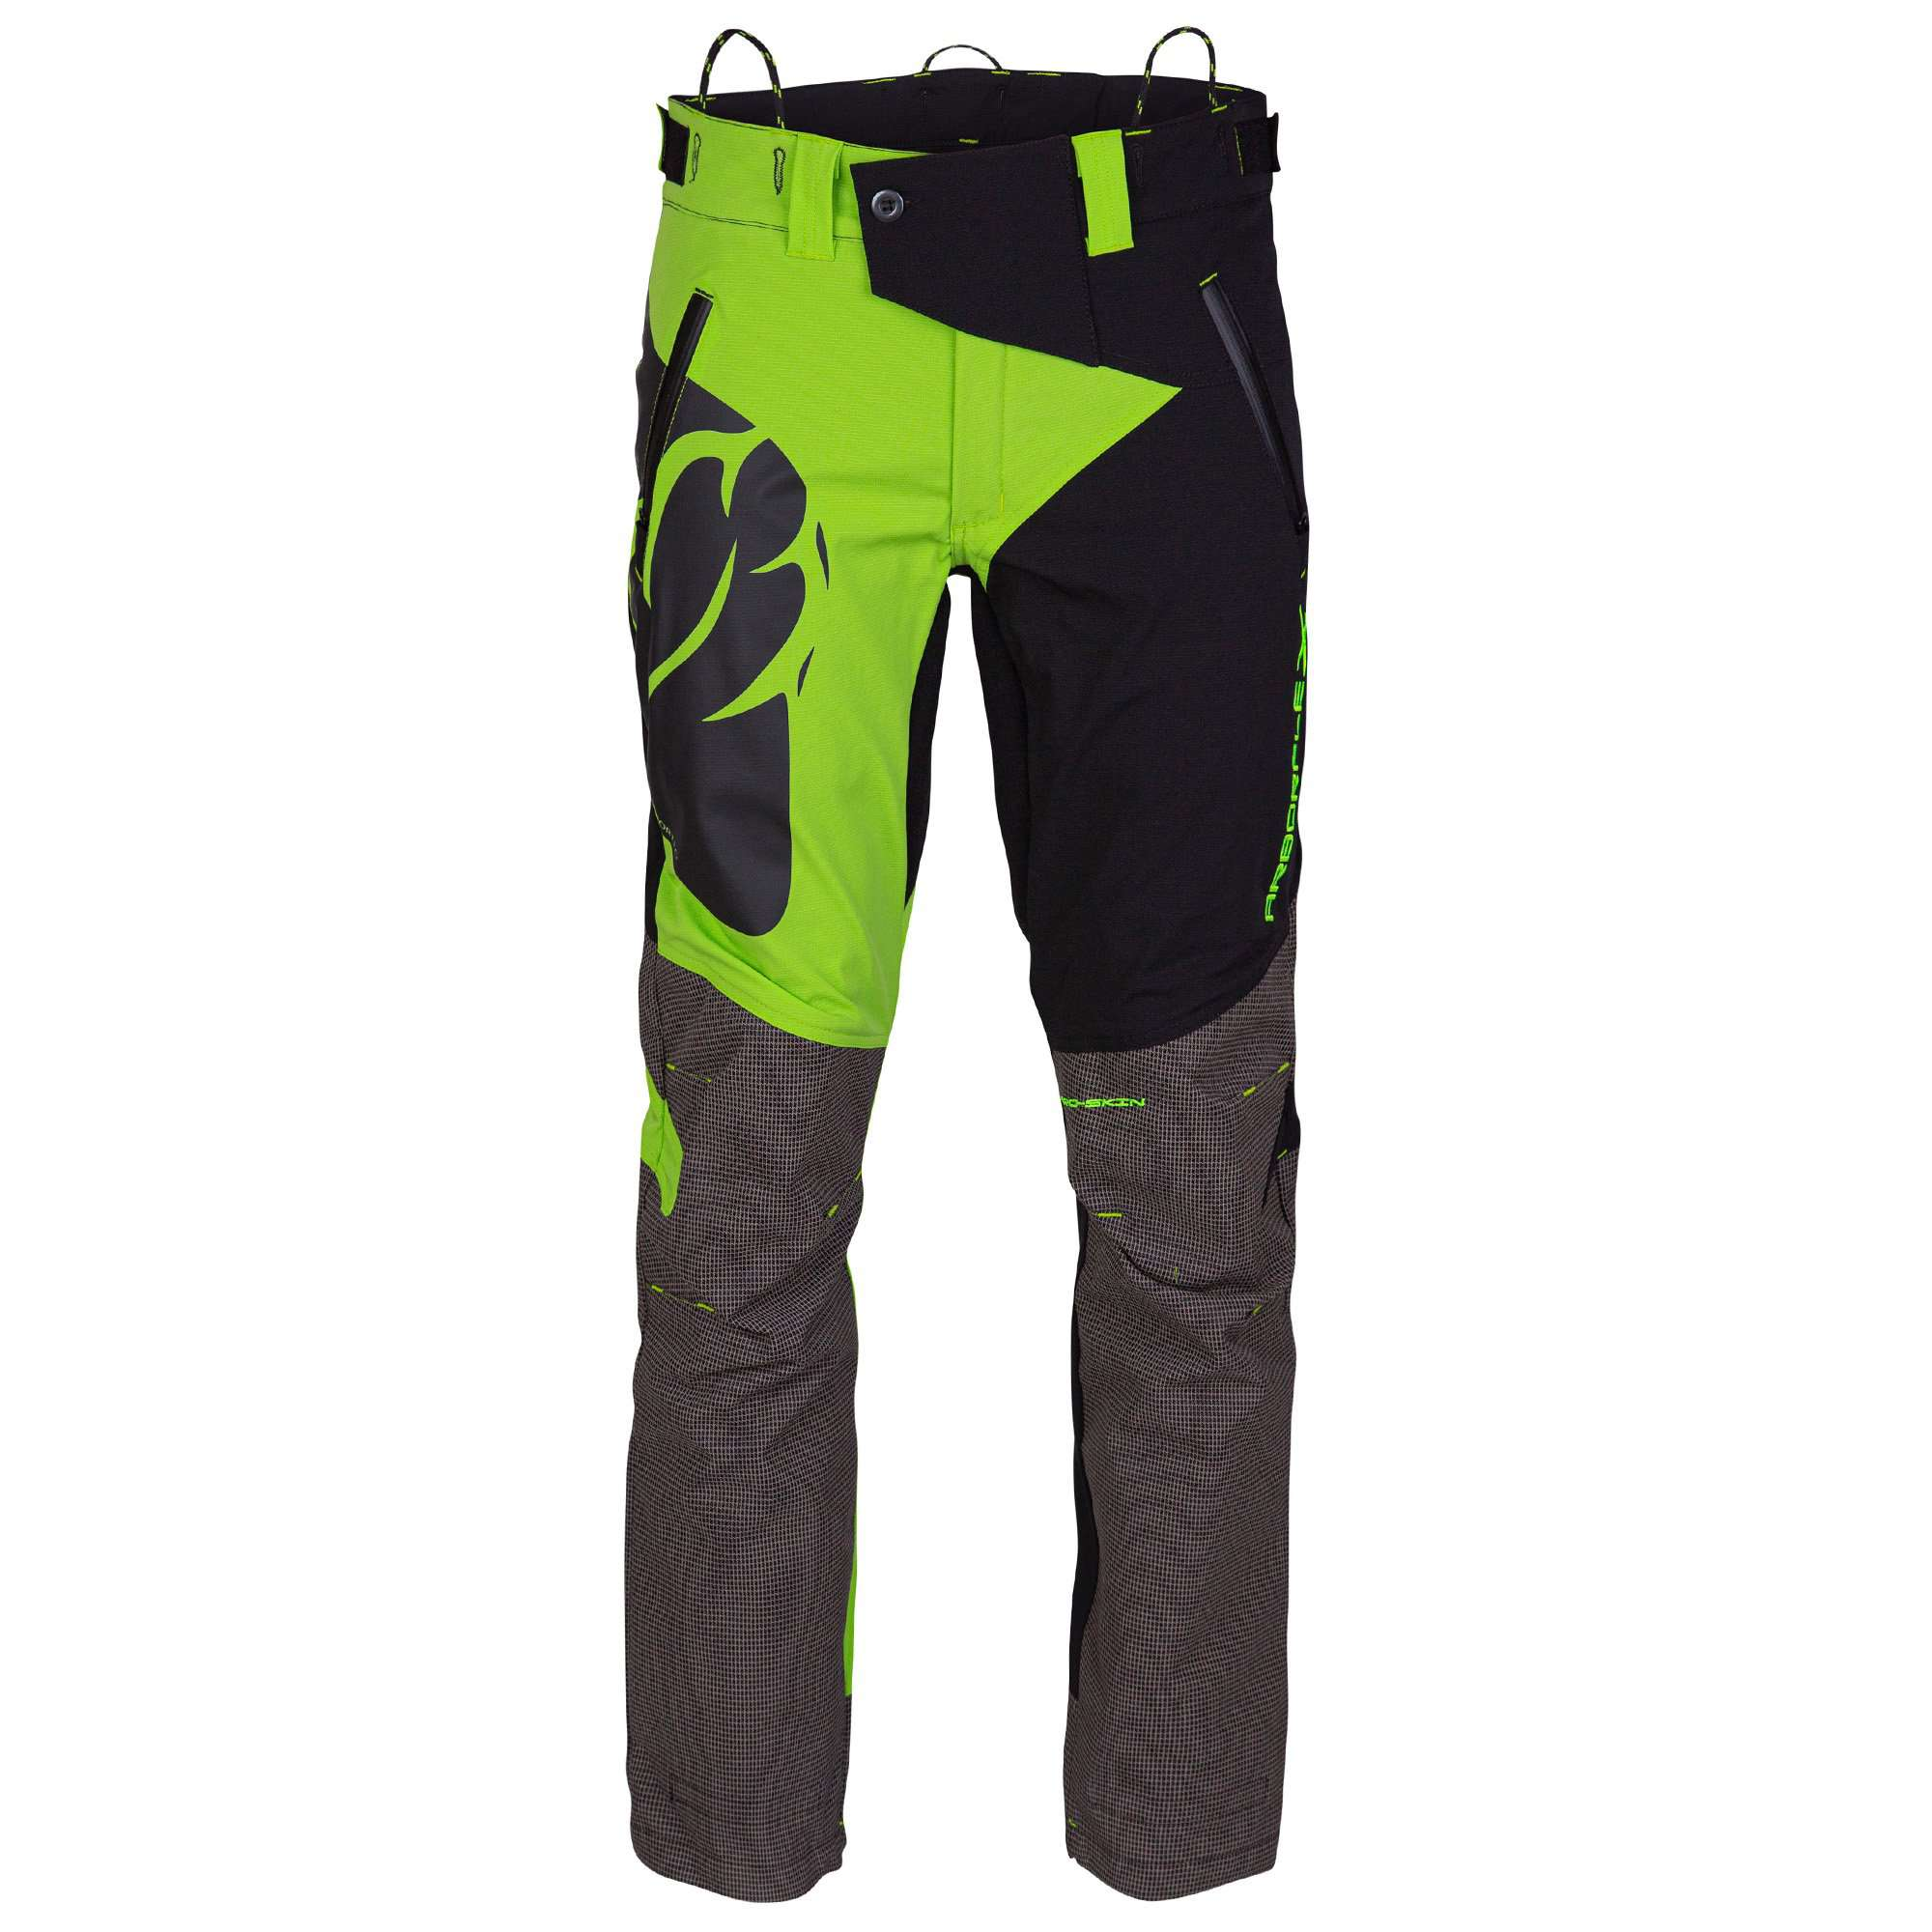 Arborflex Pro Skin Trousers - Lime - AT4185